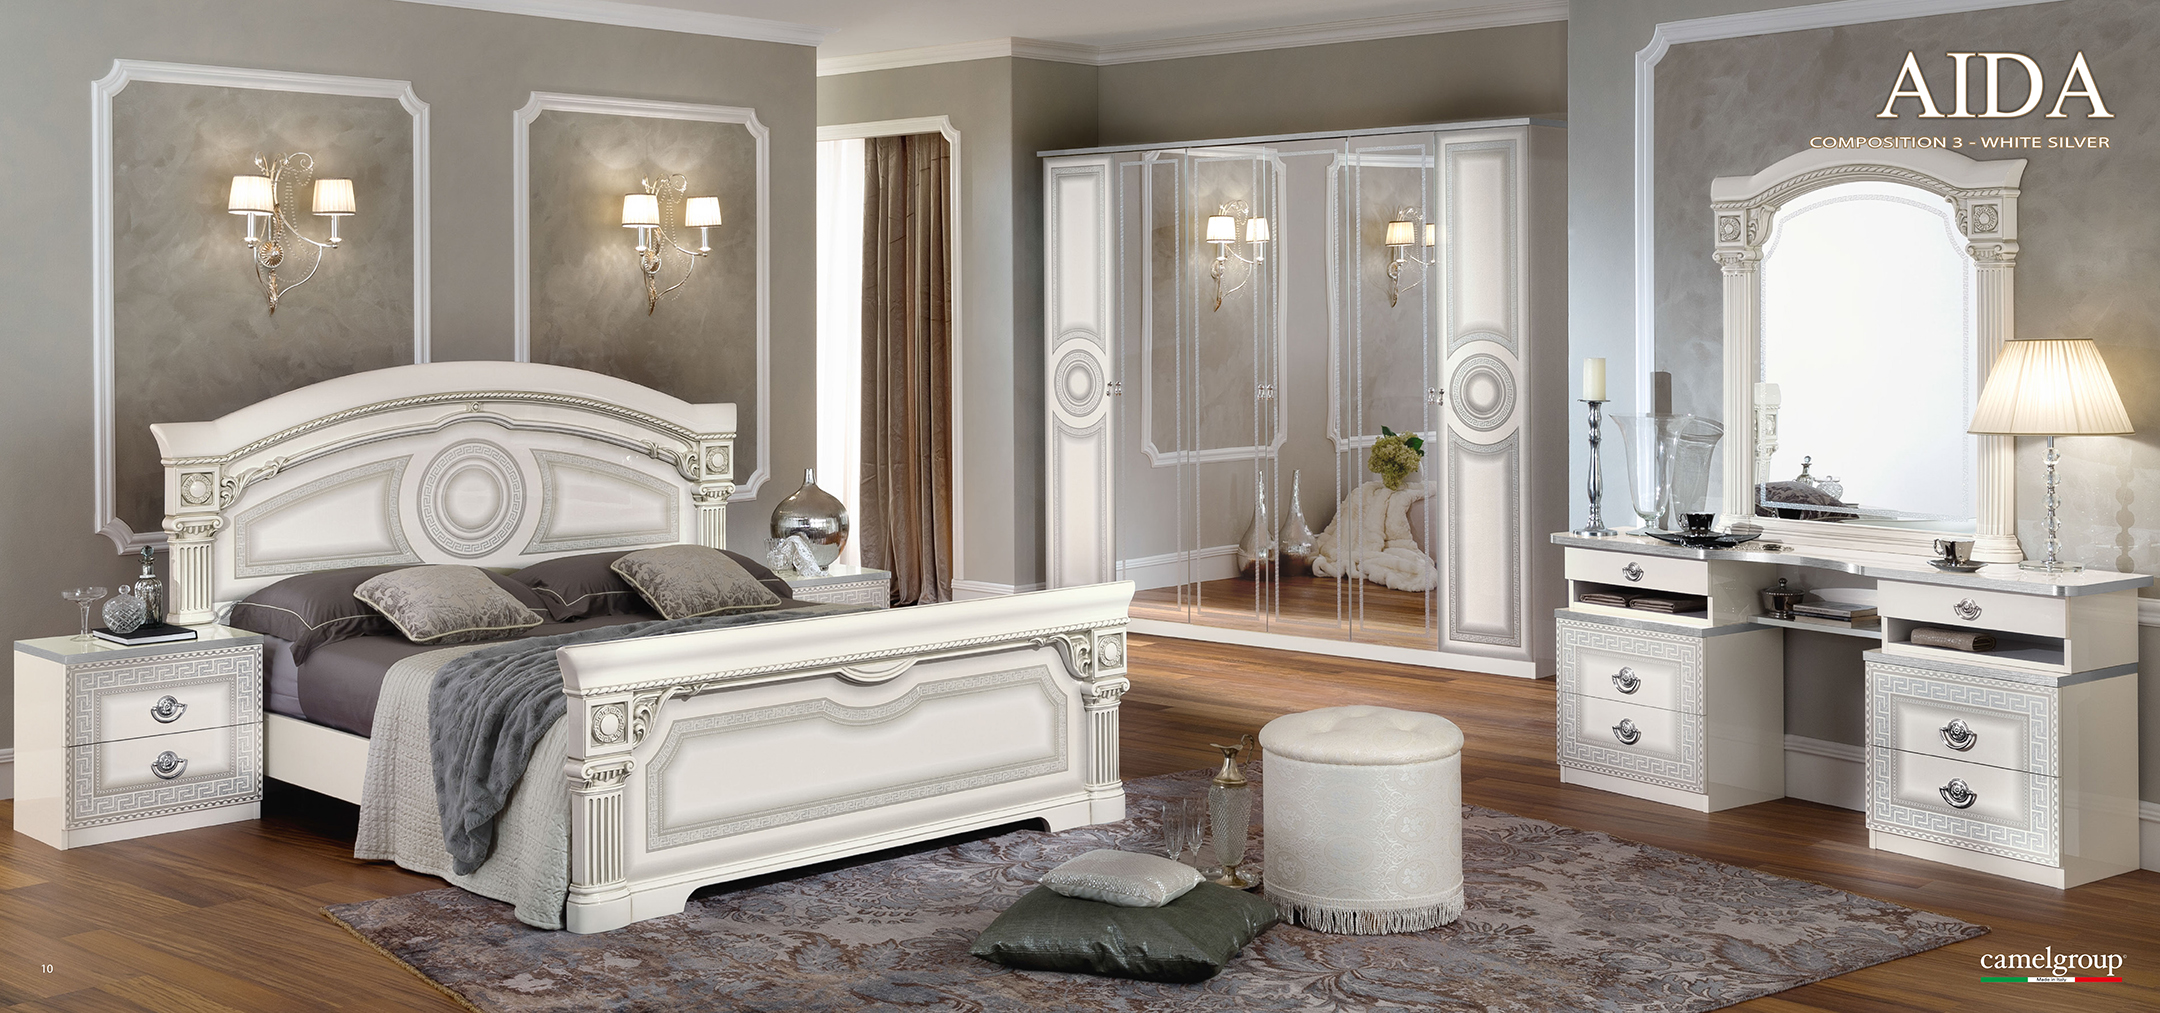 Aida White W Silver Camelgroup Italy Clic Bedrooms Bedroom Furniture